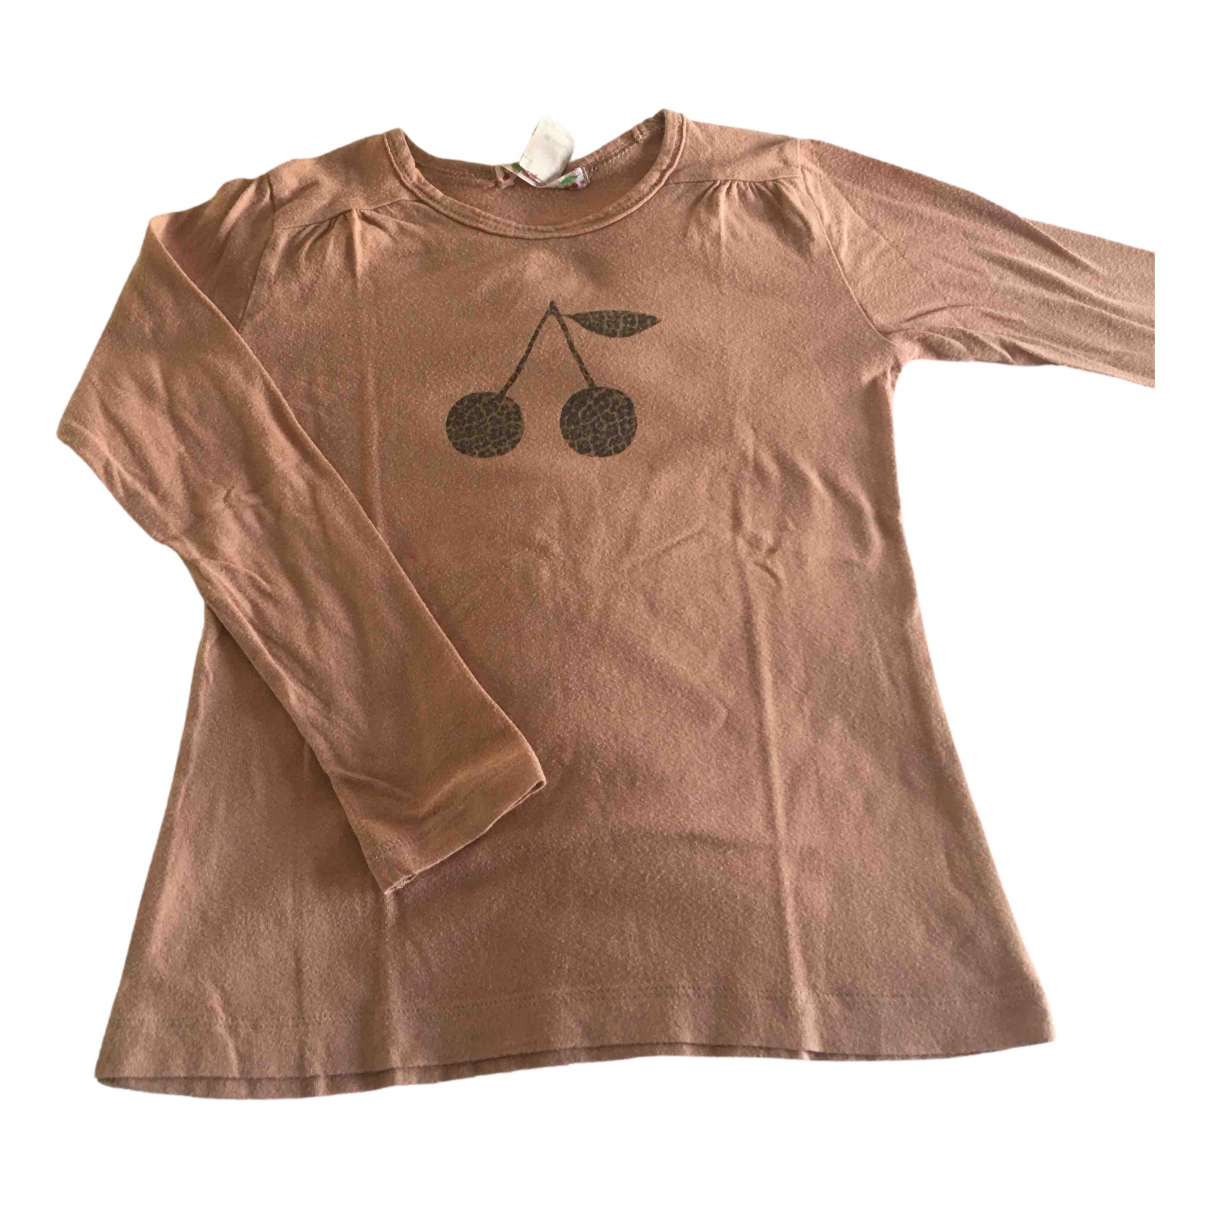 Bonpoint N Pink Cotton  top for Kids 6 years - up to 114cm FR